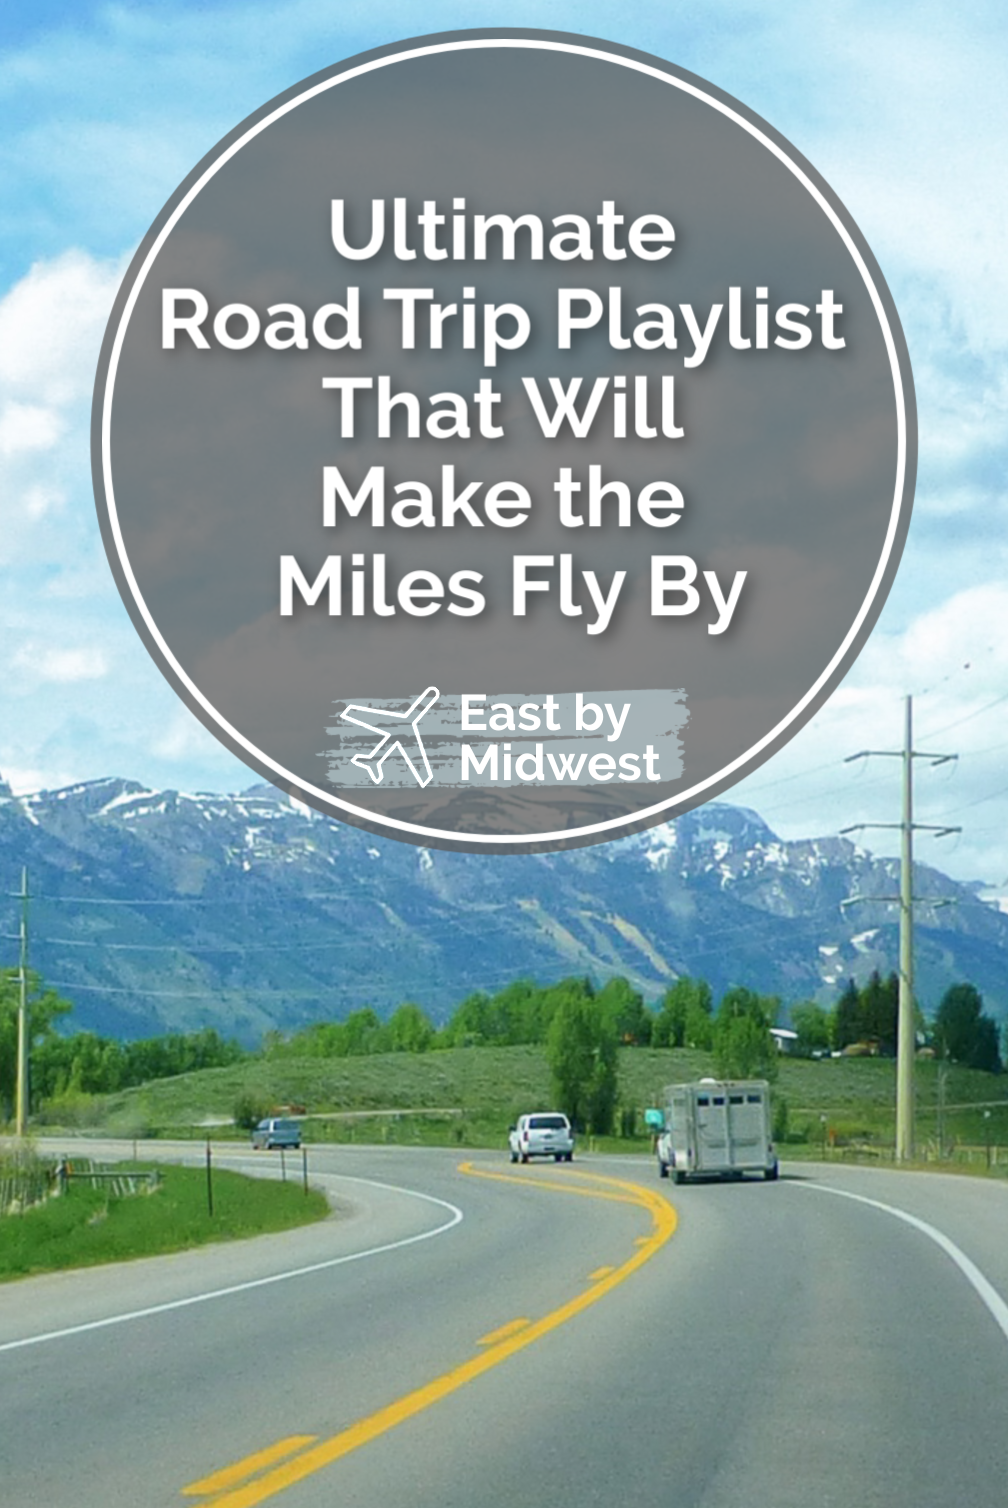 Ultimate Road Trip Playlist That Will Make the Miles Fly By